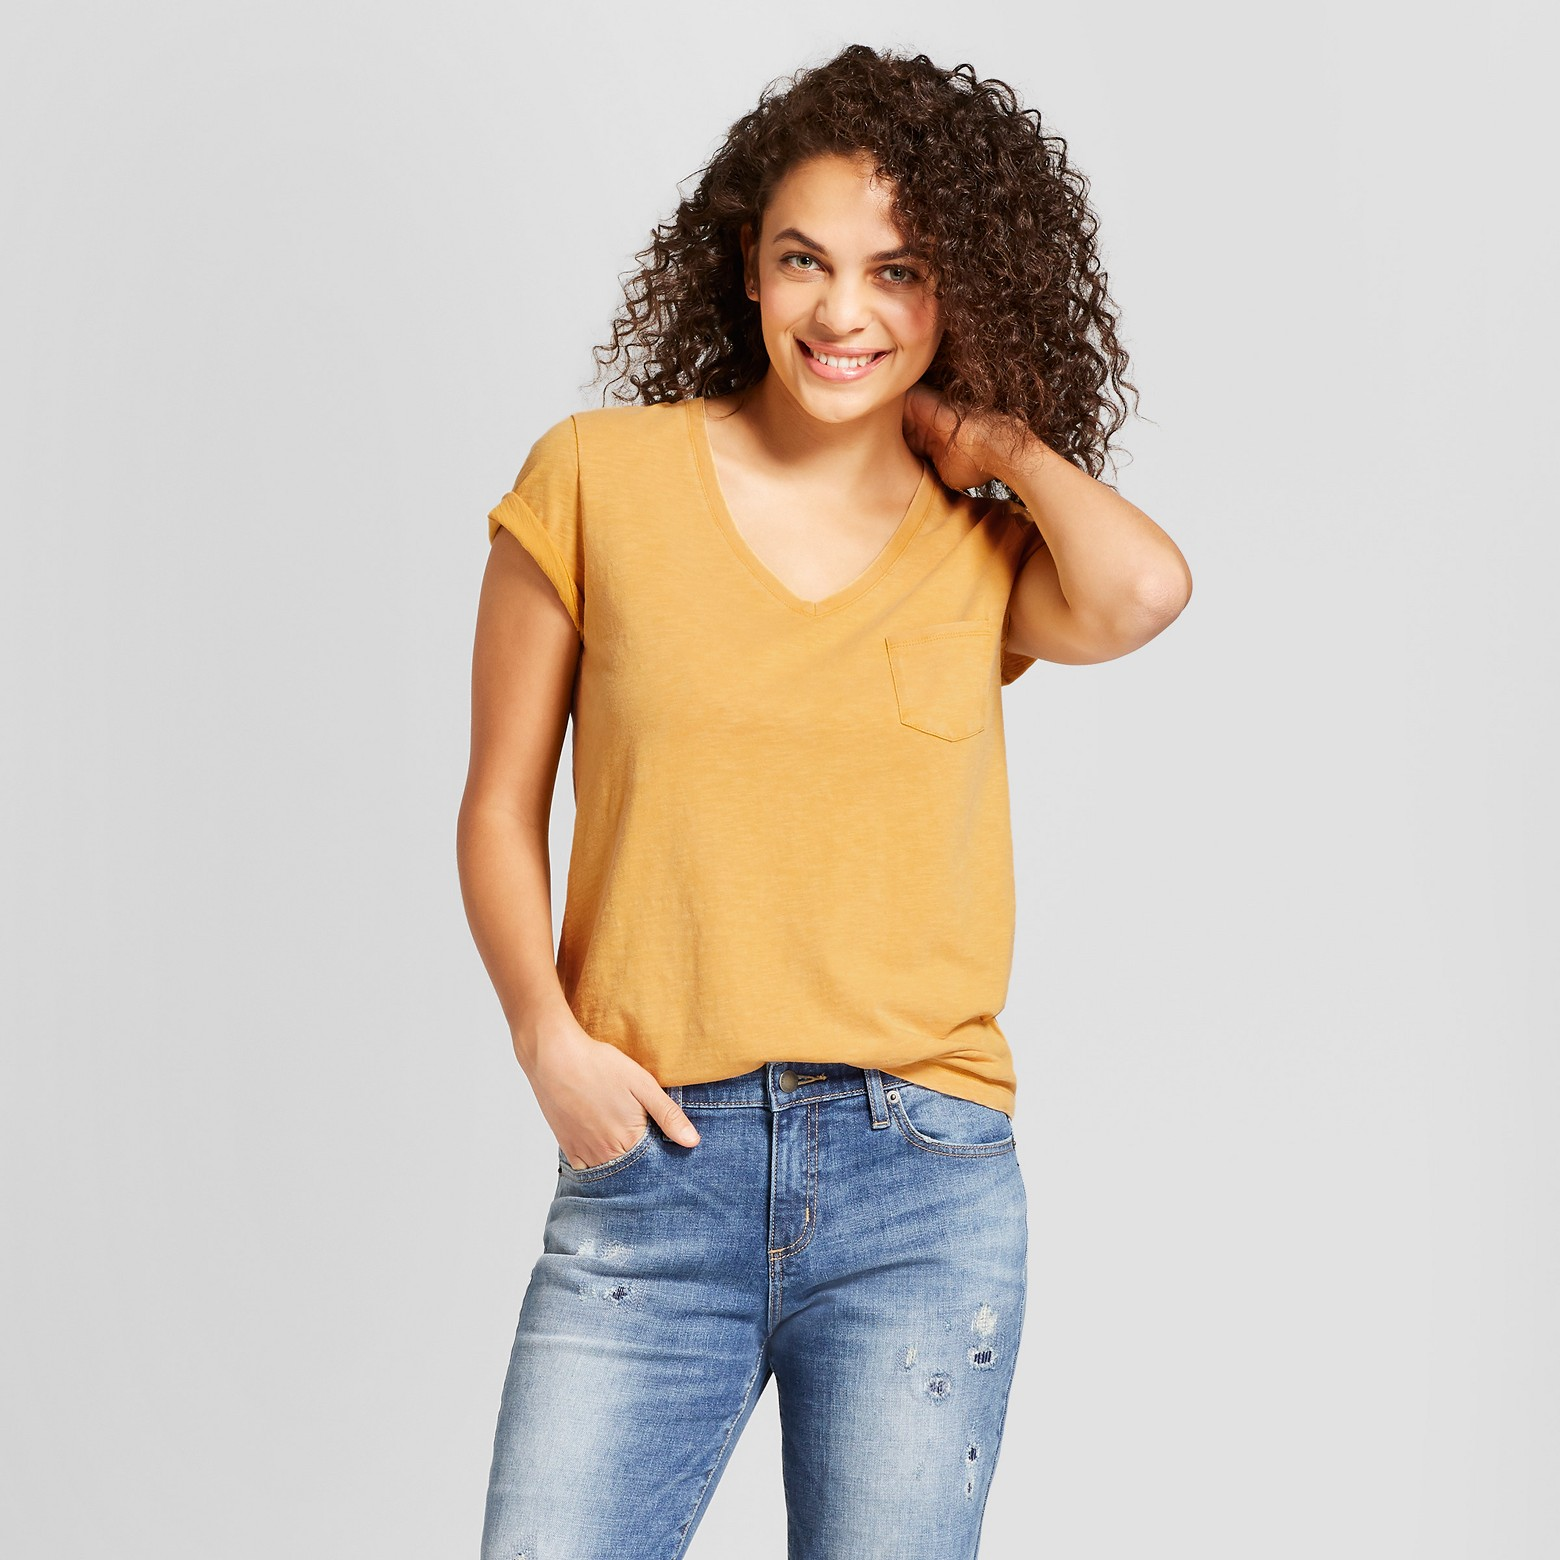 Woman wearing mustard colored V-neck with denim jeans.